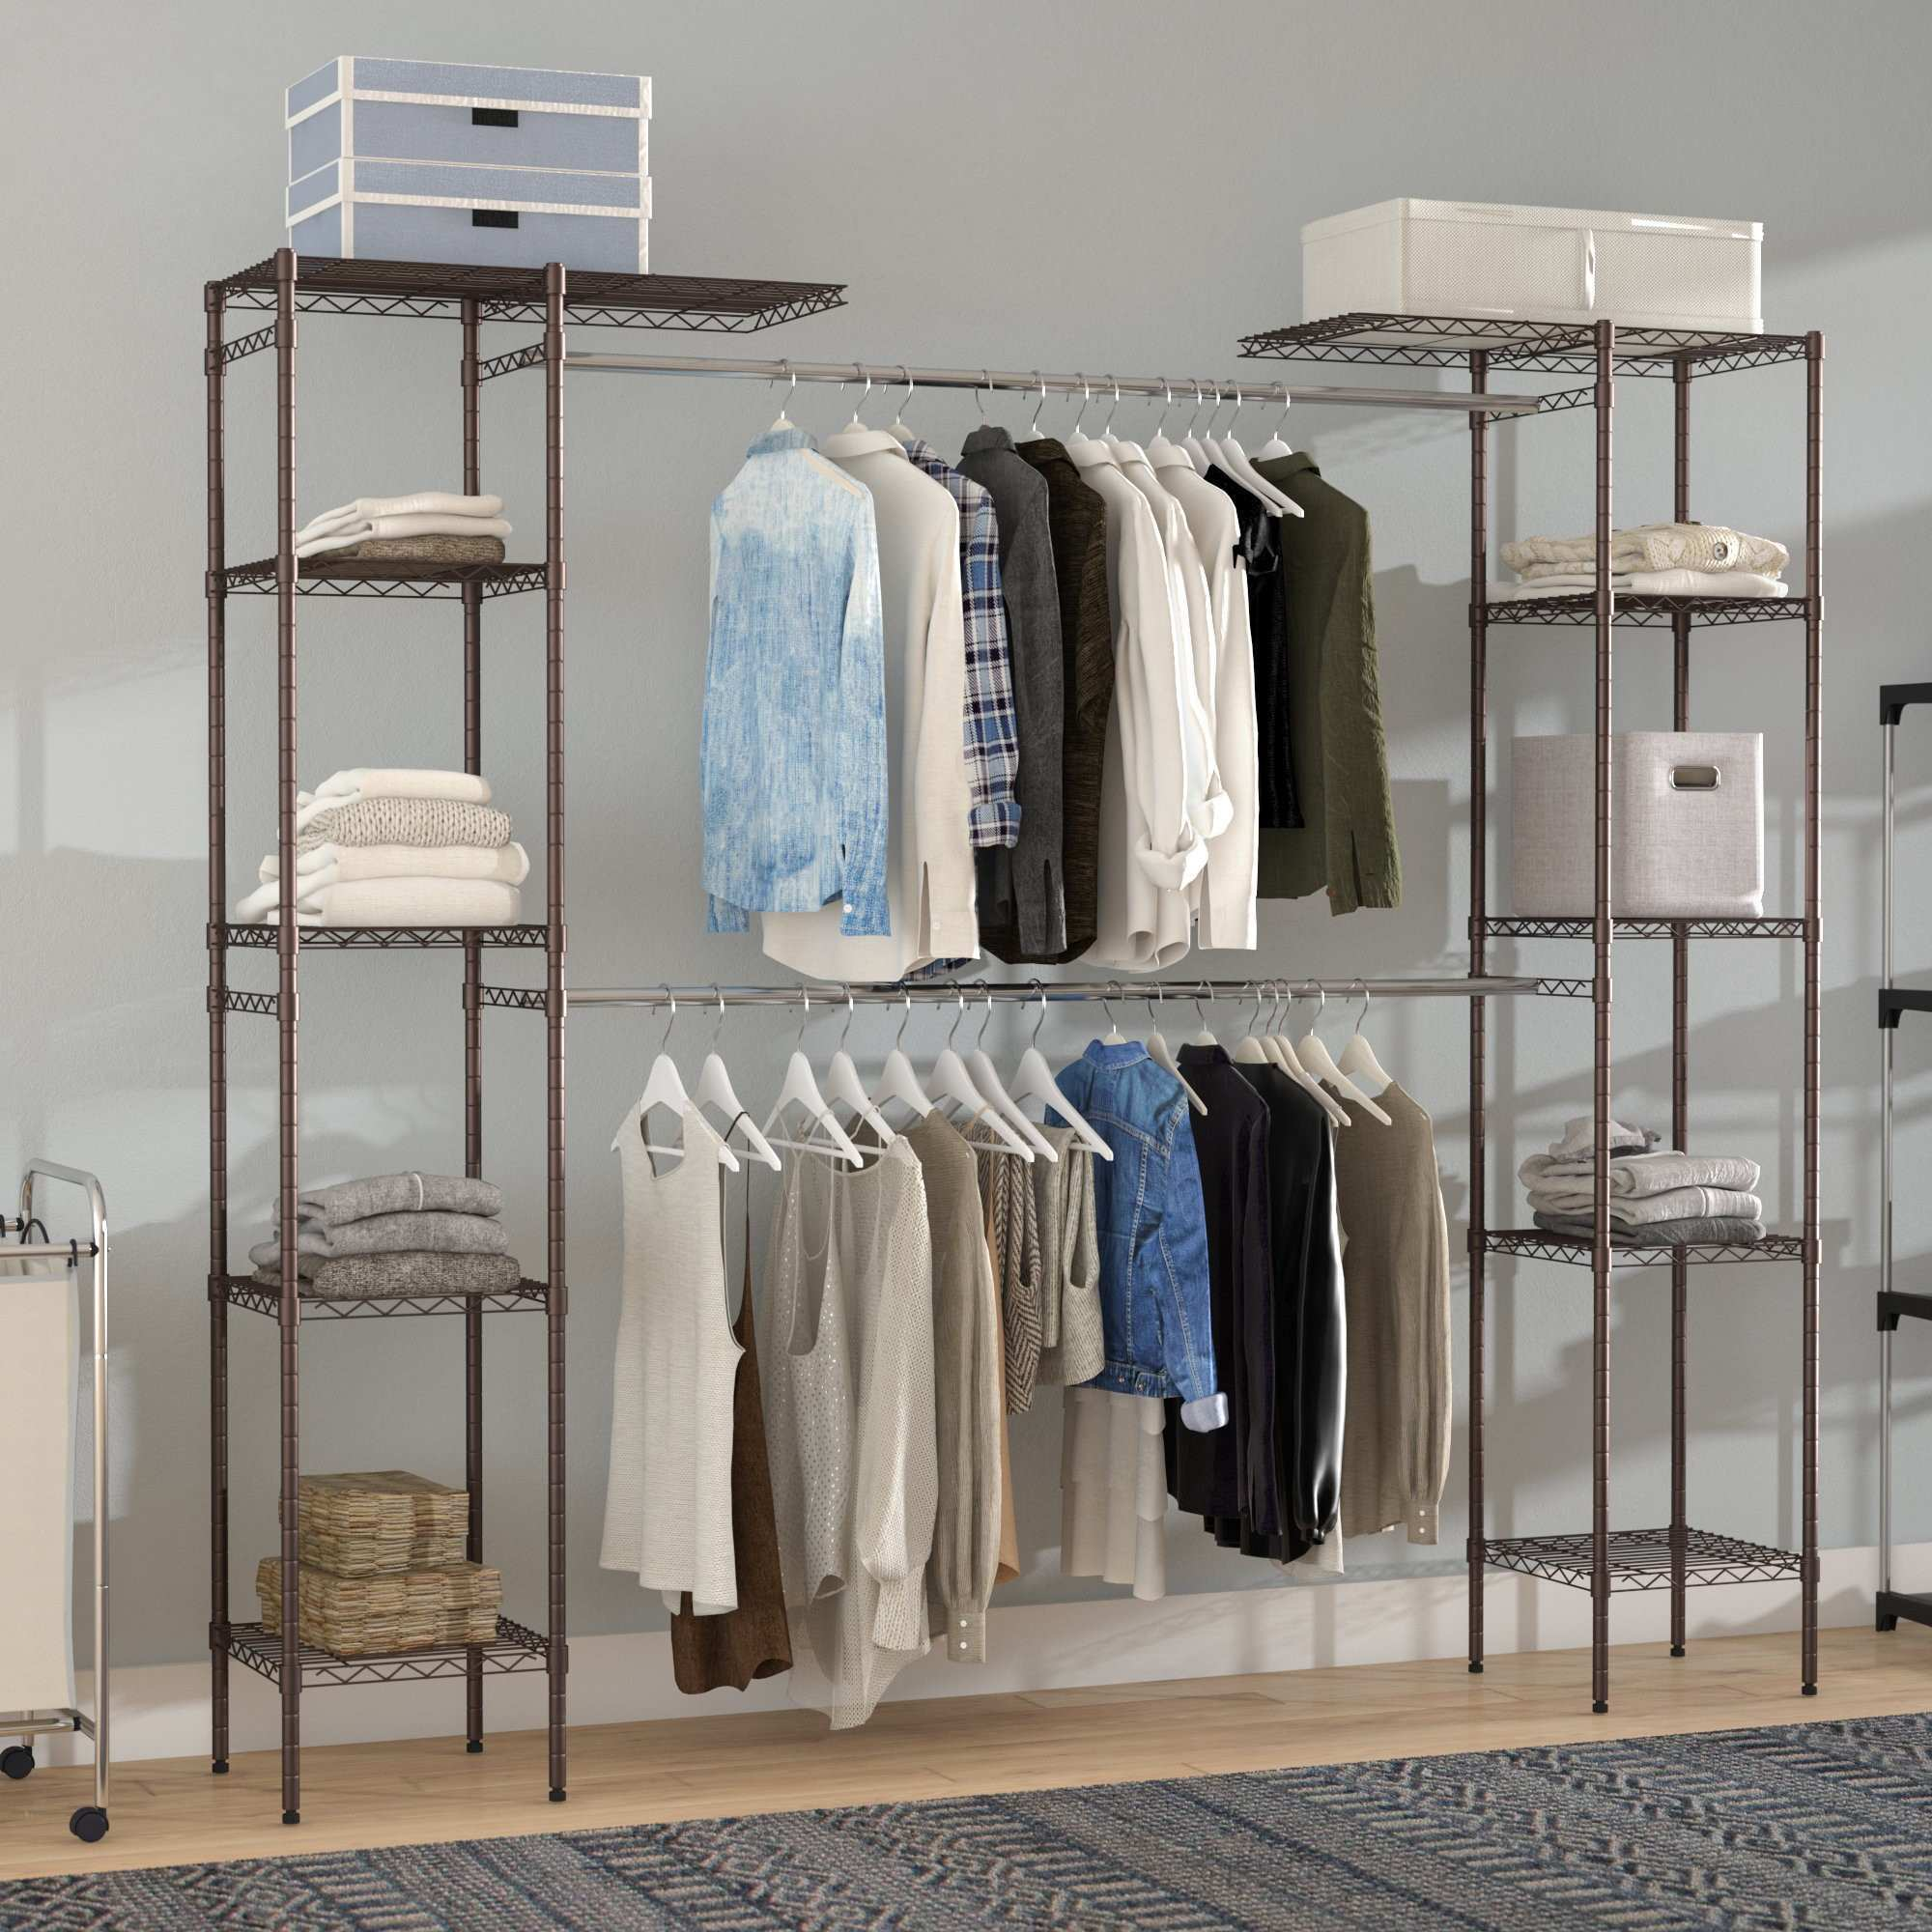 460 2xy Wardrobe Hanging Systems Rails For Coats Shelves Shoes And